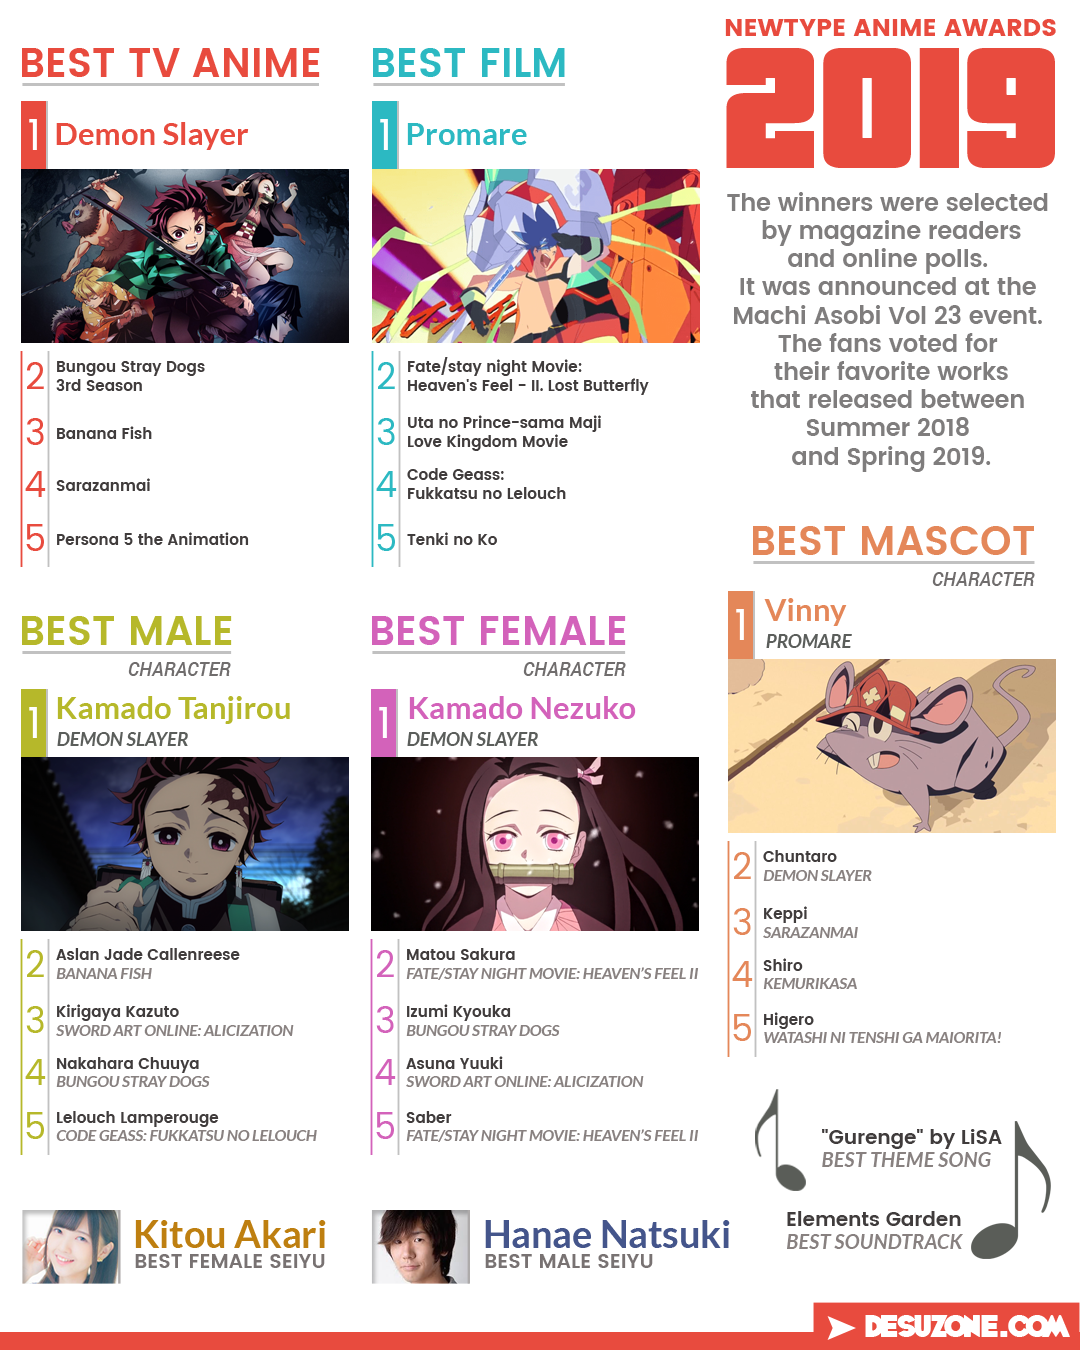 newtype anime awards 2019 result